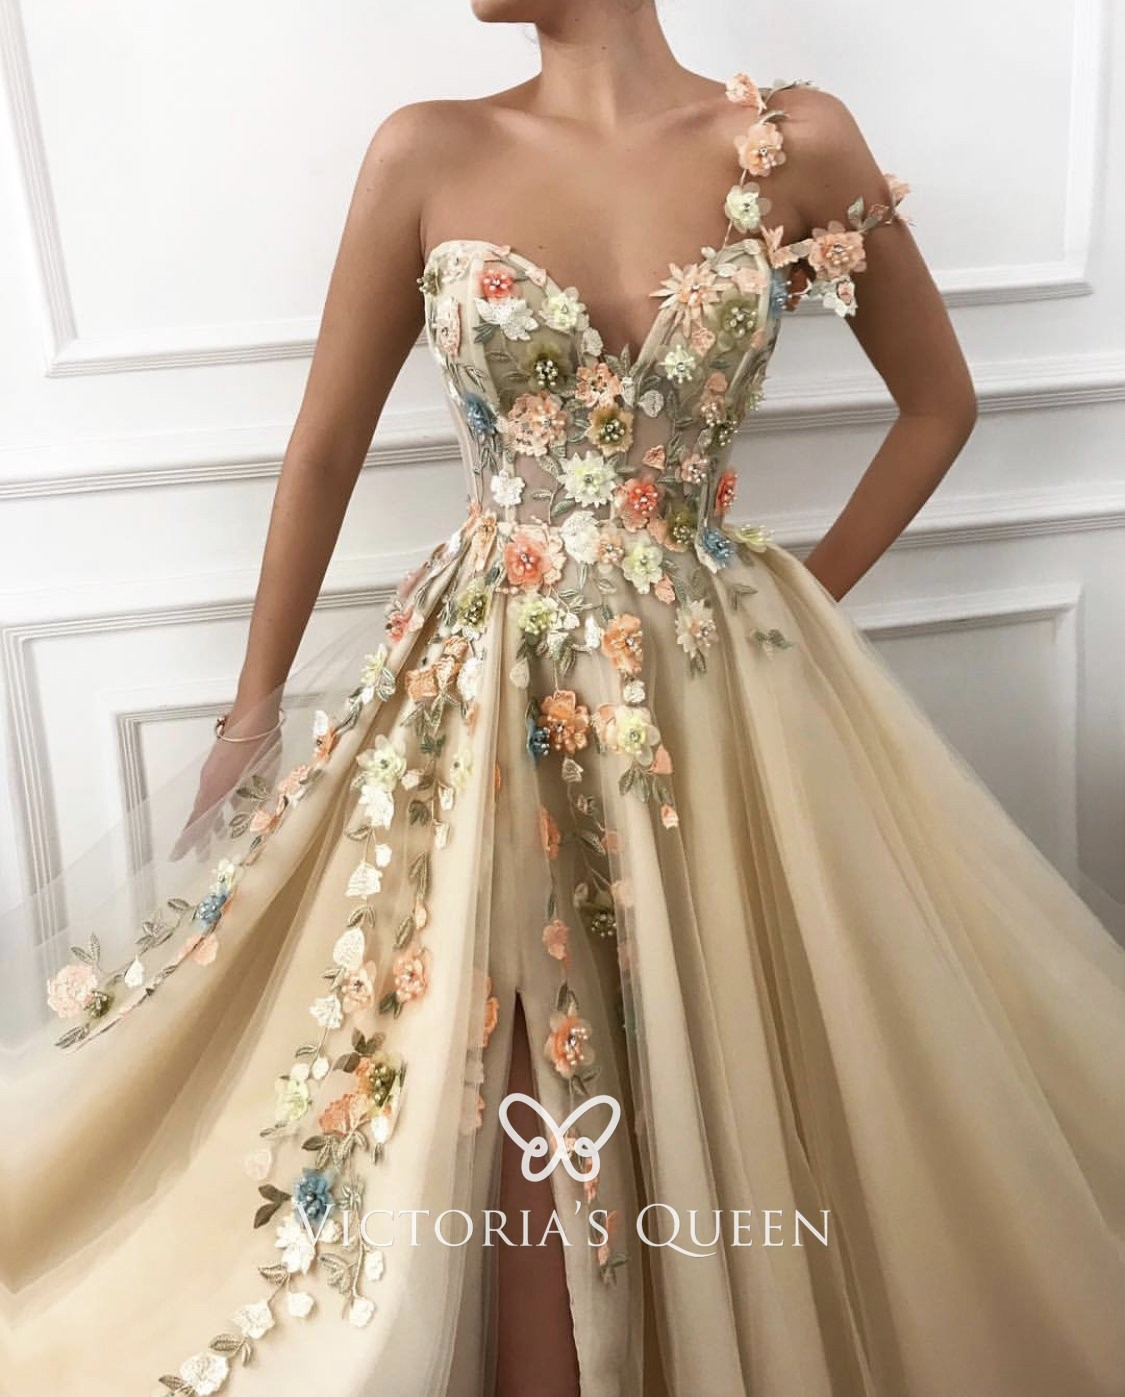 Nude Tulle with Flowers One Shoulder Split Evening Gown - VQ